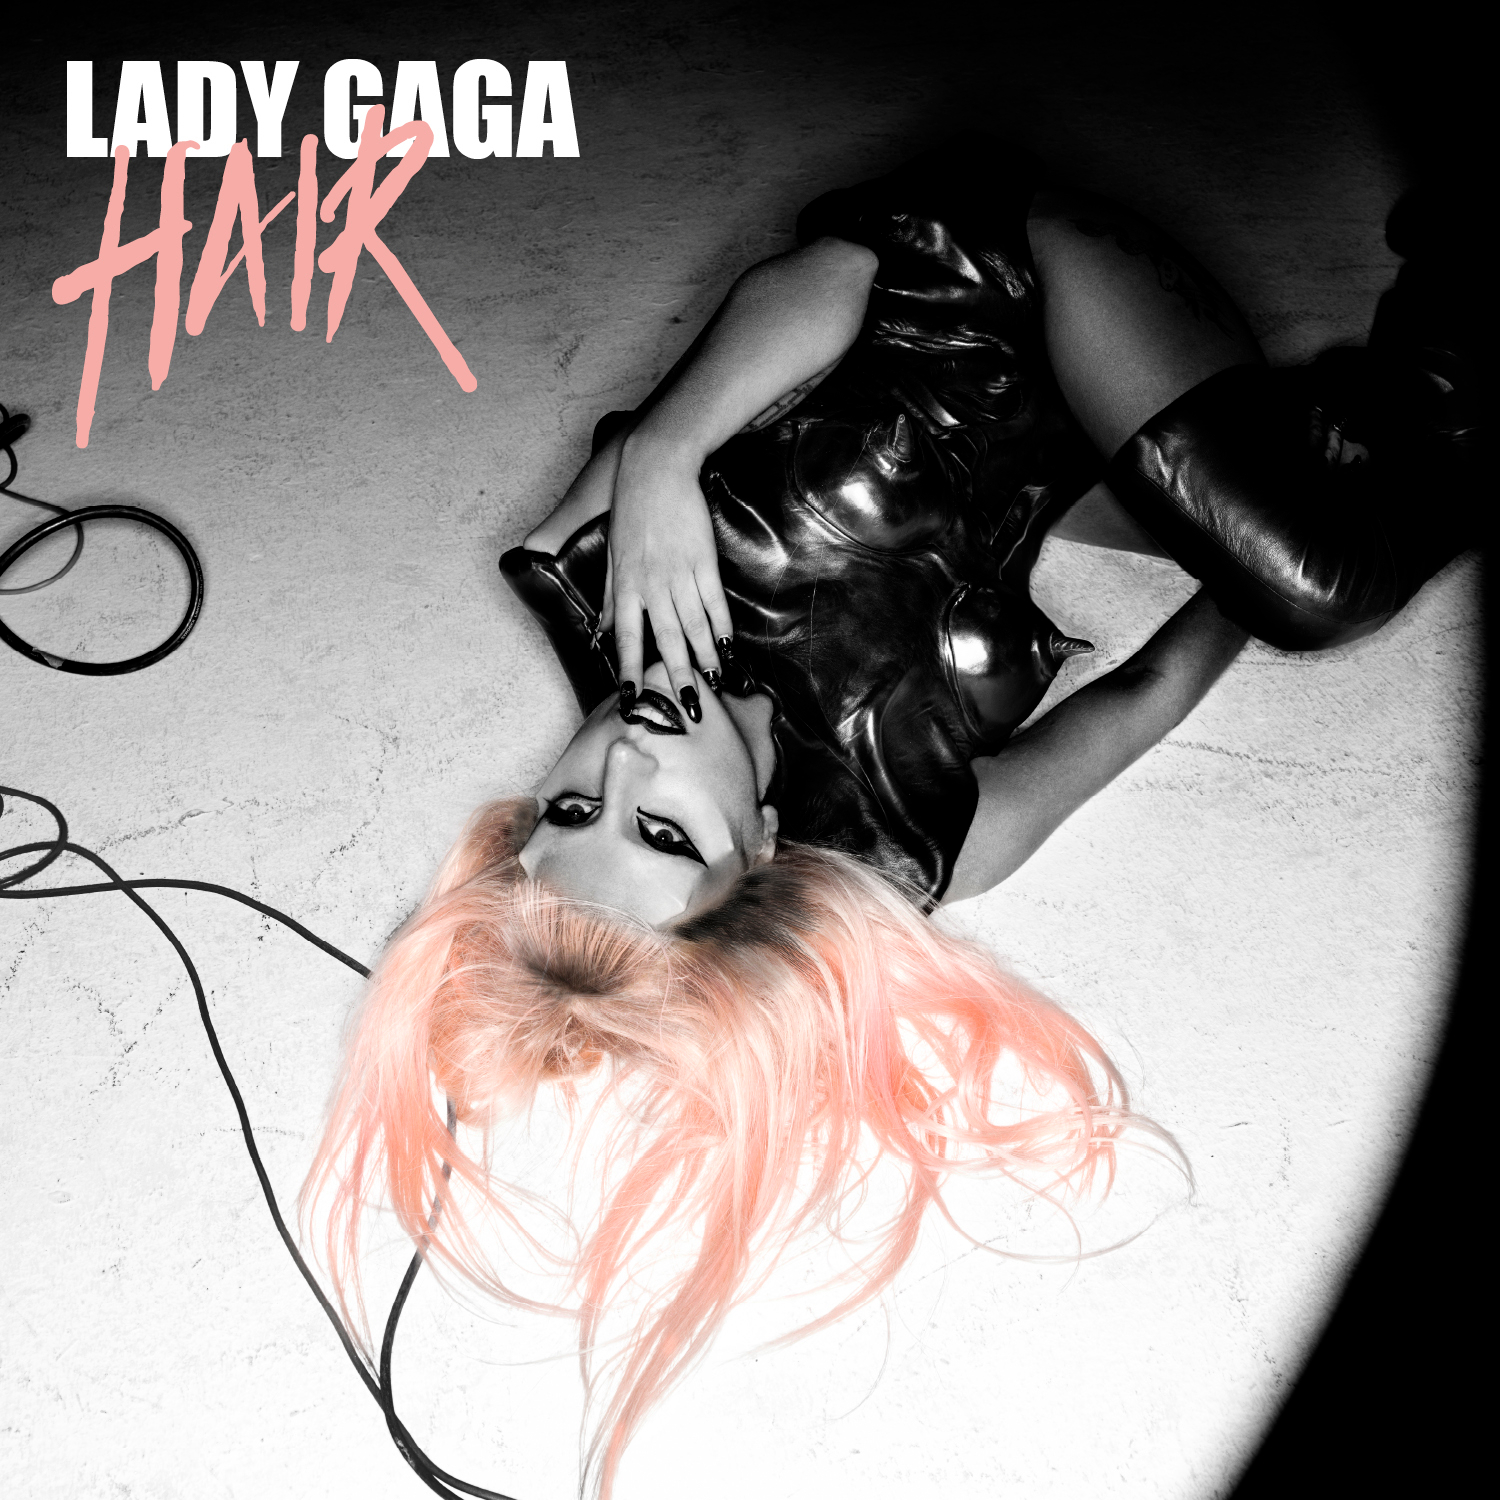 Hair+-+Official+1500x1500.jpg